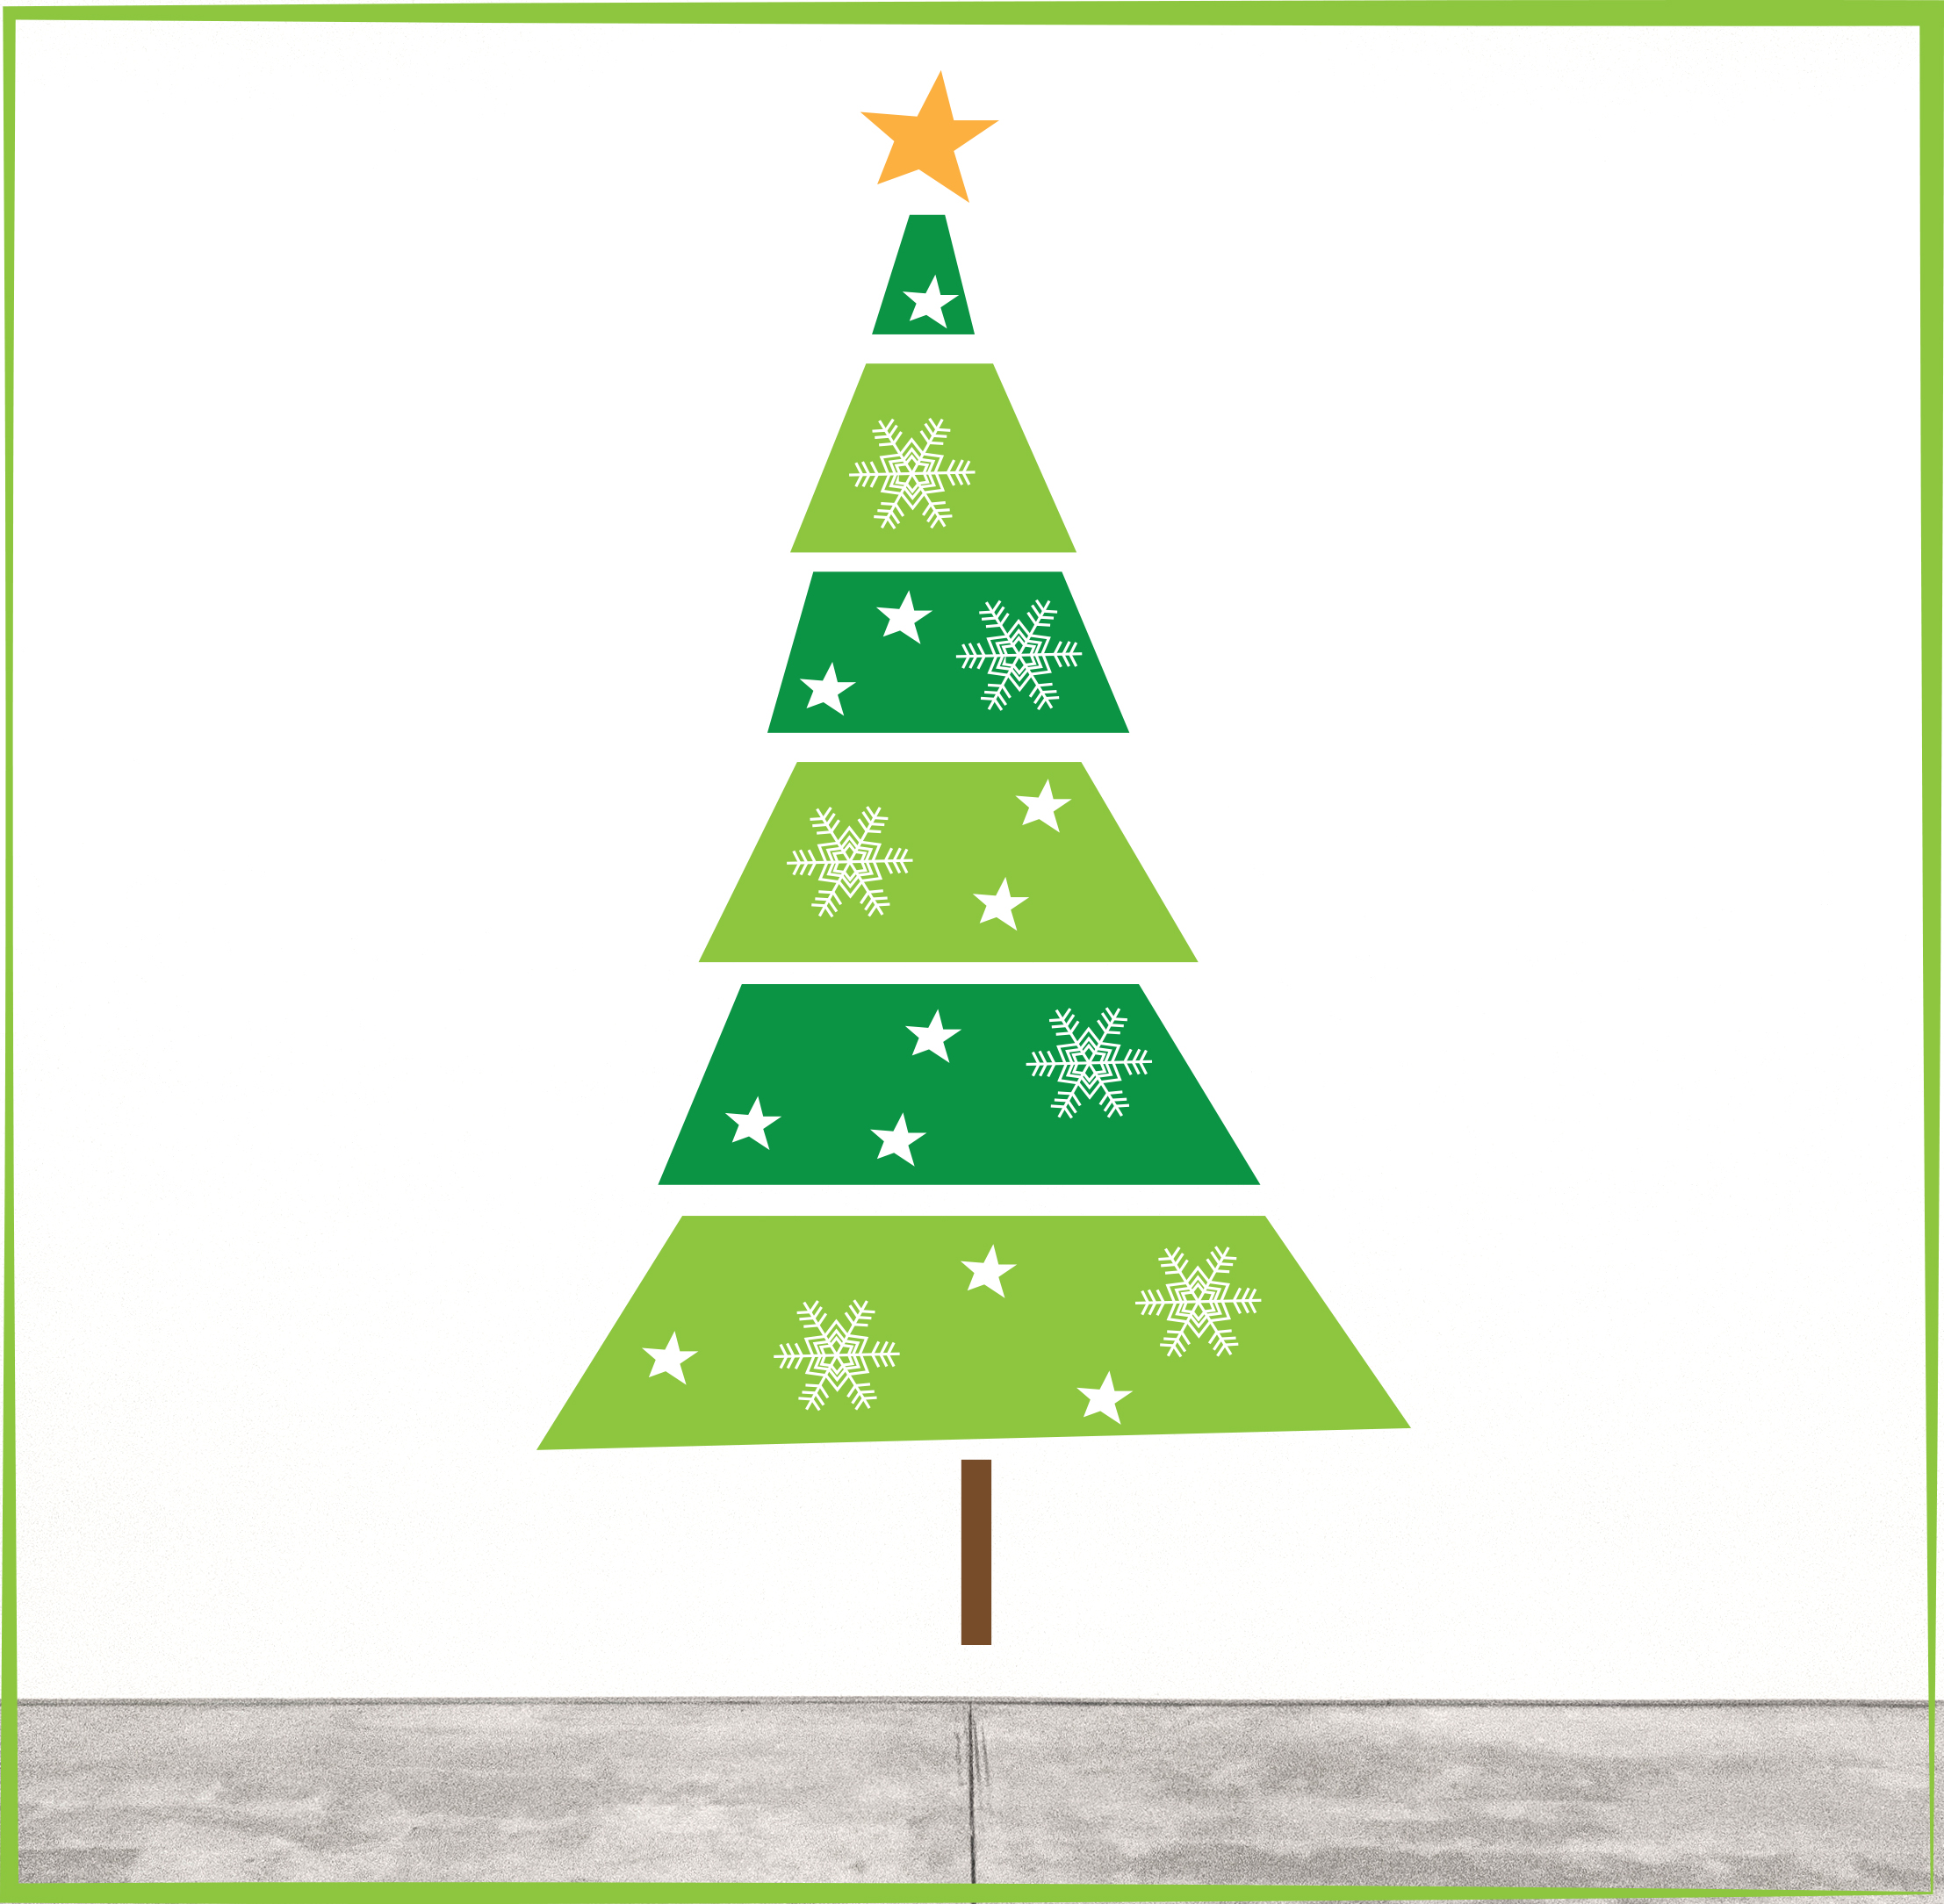 Pack 1:     Christmas Tree Cut Out  - $49    Size:  560 x 1000mm - Layers are supplied separately